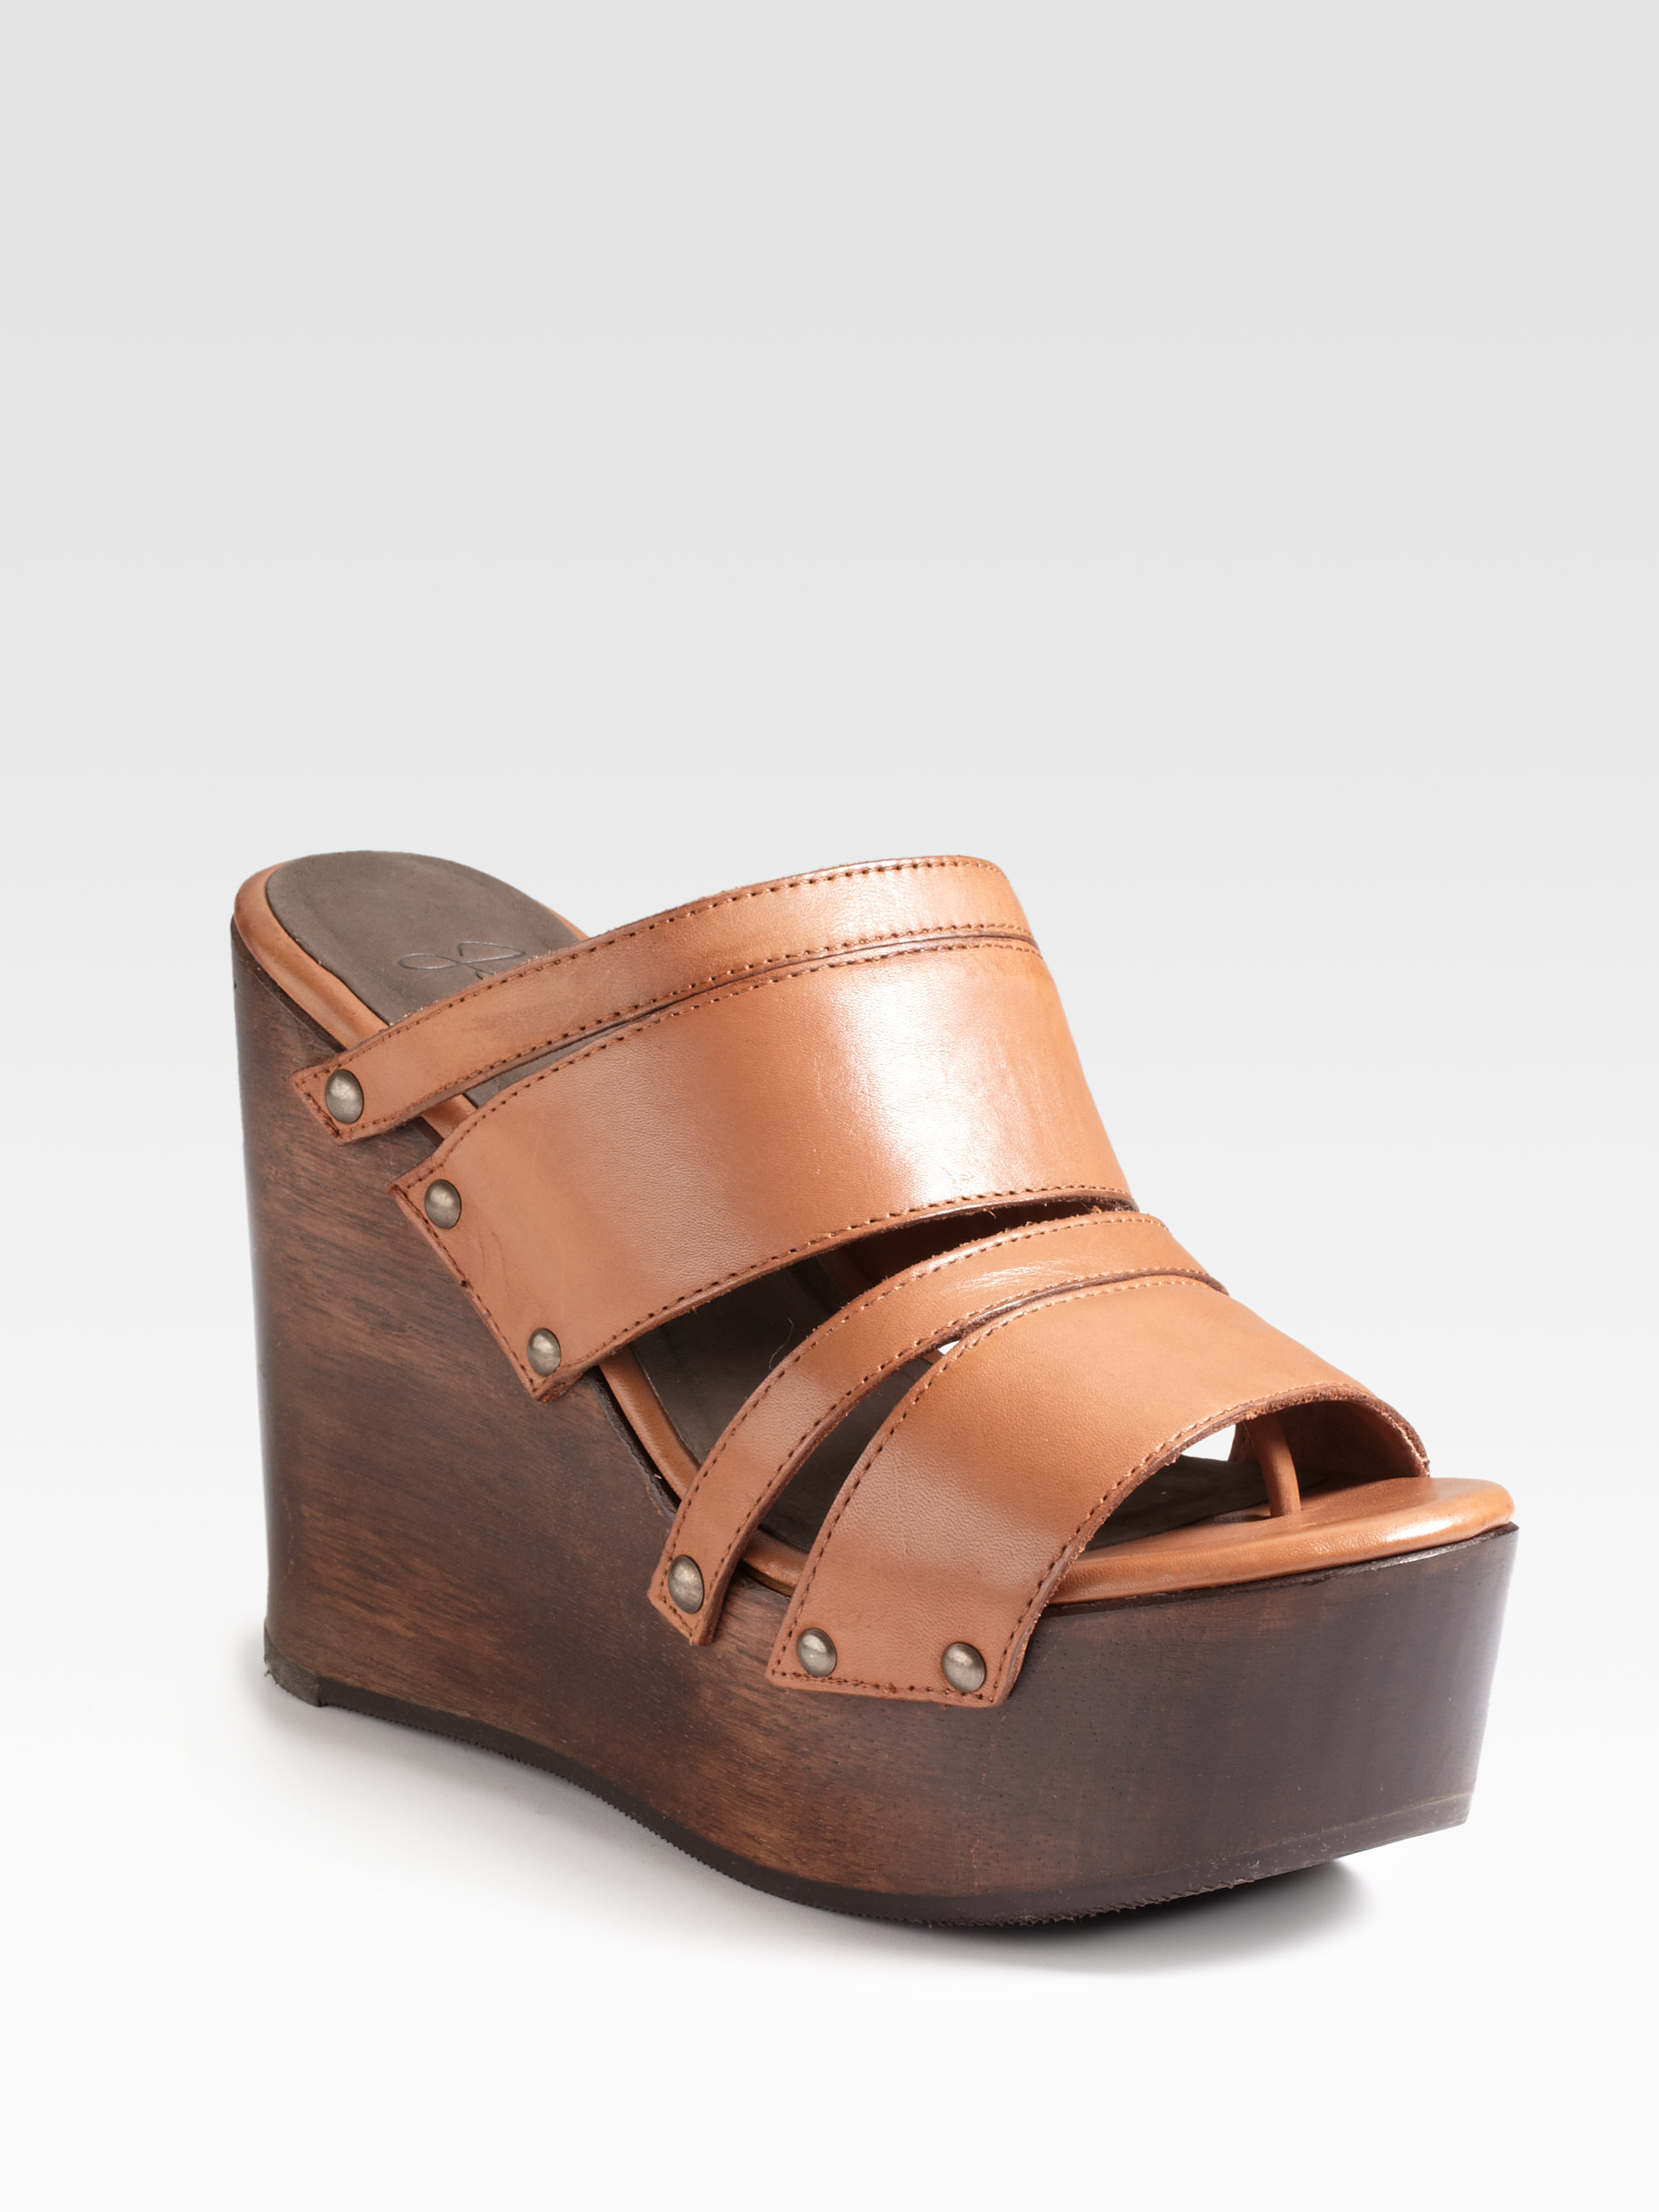 07a8644c69a Lyst - Joie Womack Wooden Platform Wedge Sandals in Brown